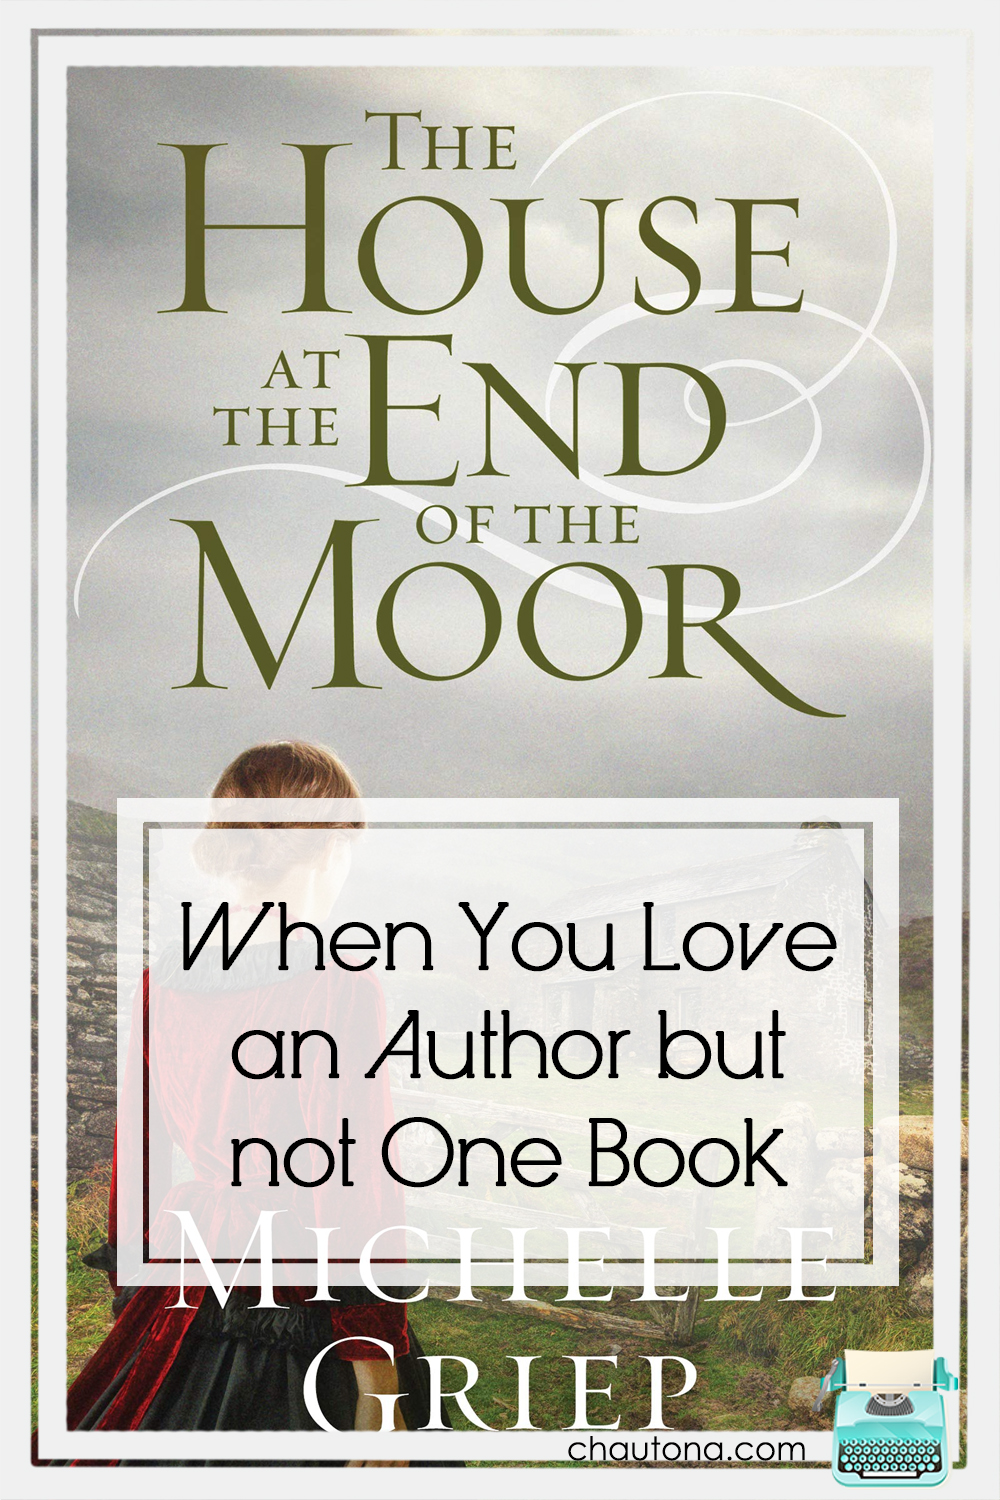 The House at the End of the Moor turned out to be a surprise of an entirely different kind. Curious to know what others think of it. via @chautonahavig